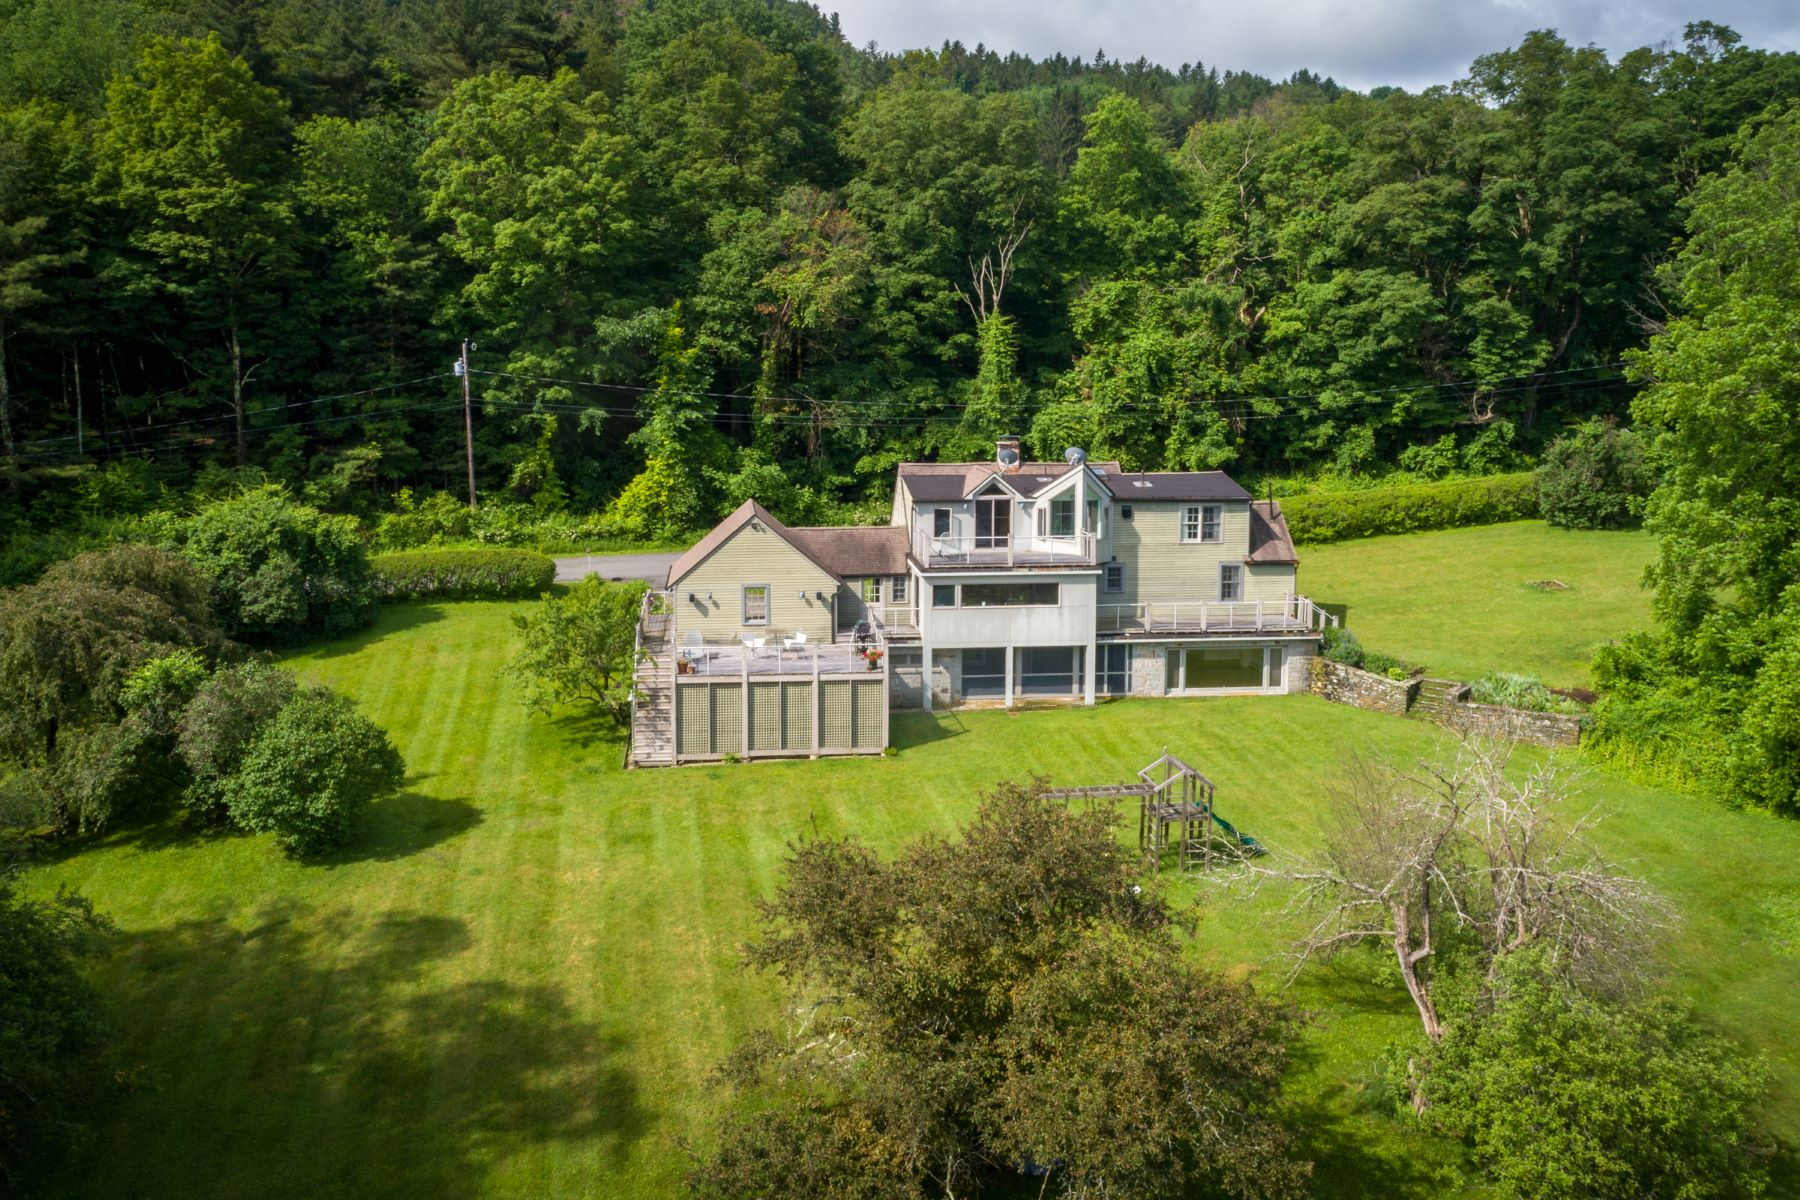 Single Family Homes for Active at Big Views, Chic Design, and 5 Private Acres 169 Jug End Rd Egremont, Massachusetts 01230 United States